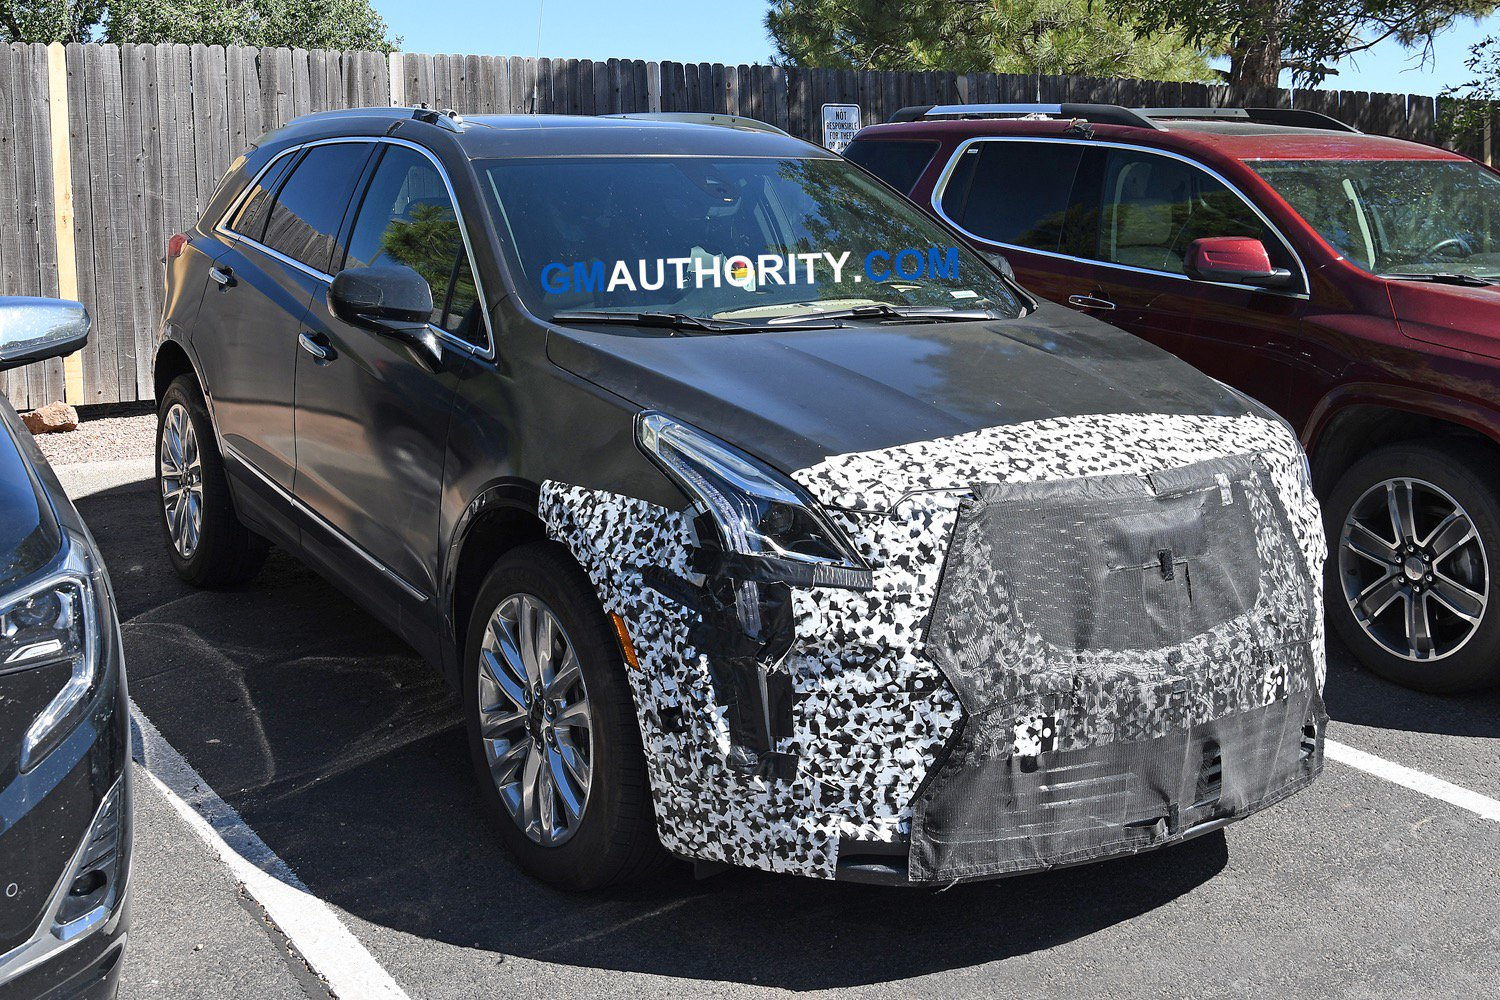 89 New 2020 Spy Shots Cadillac Xt5 New Review